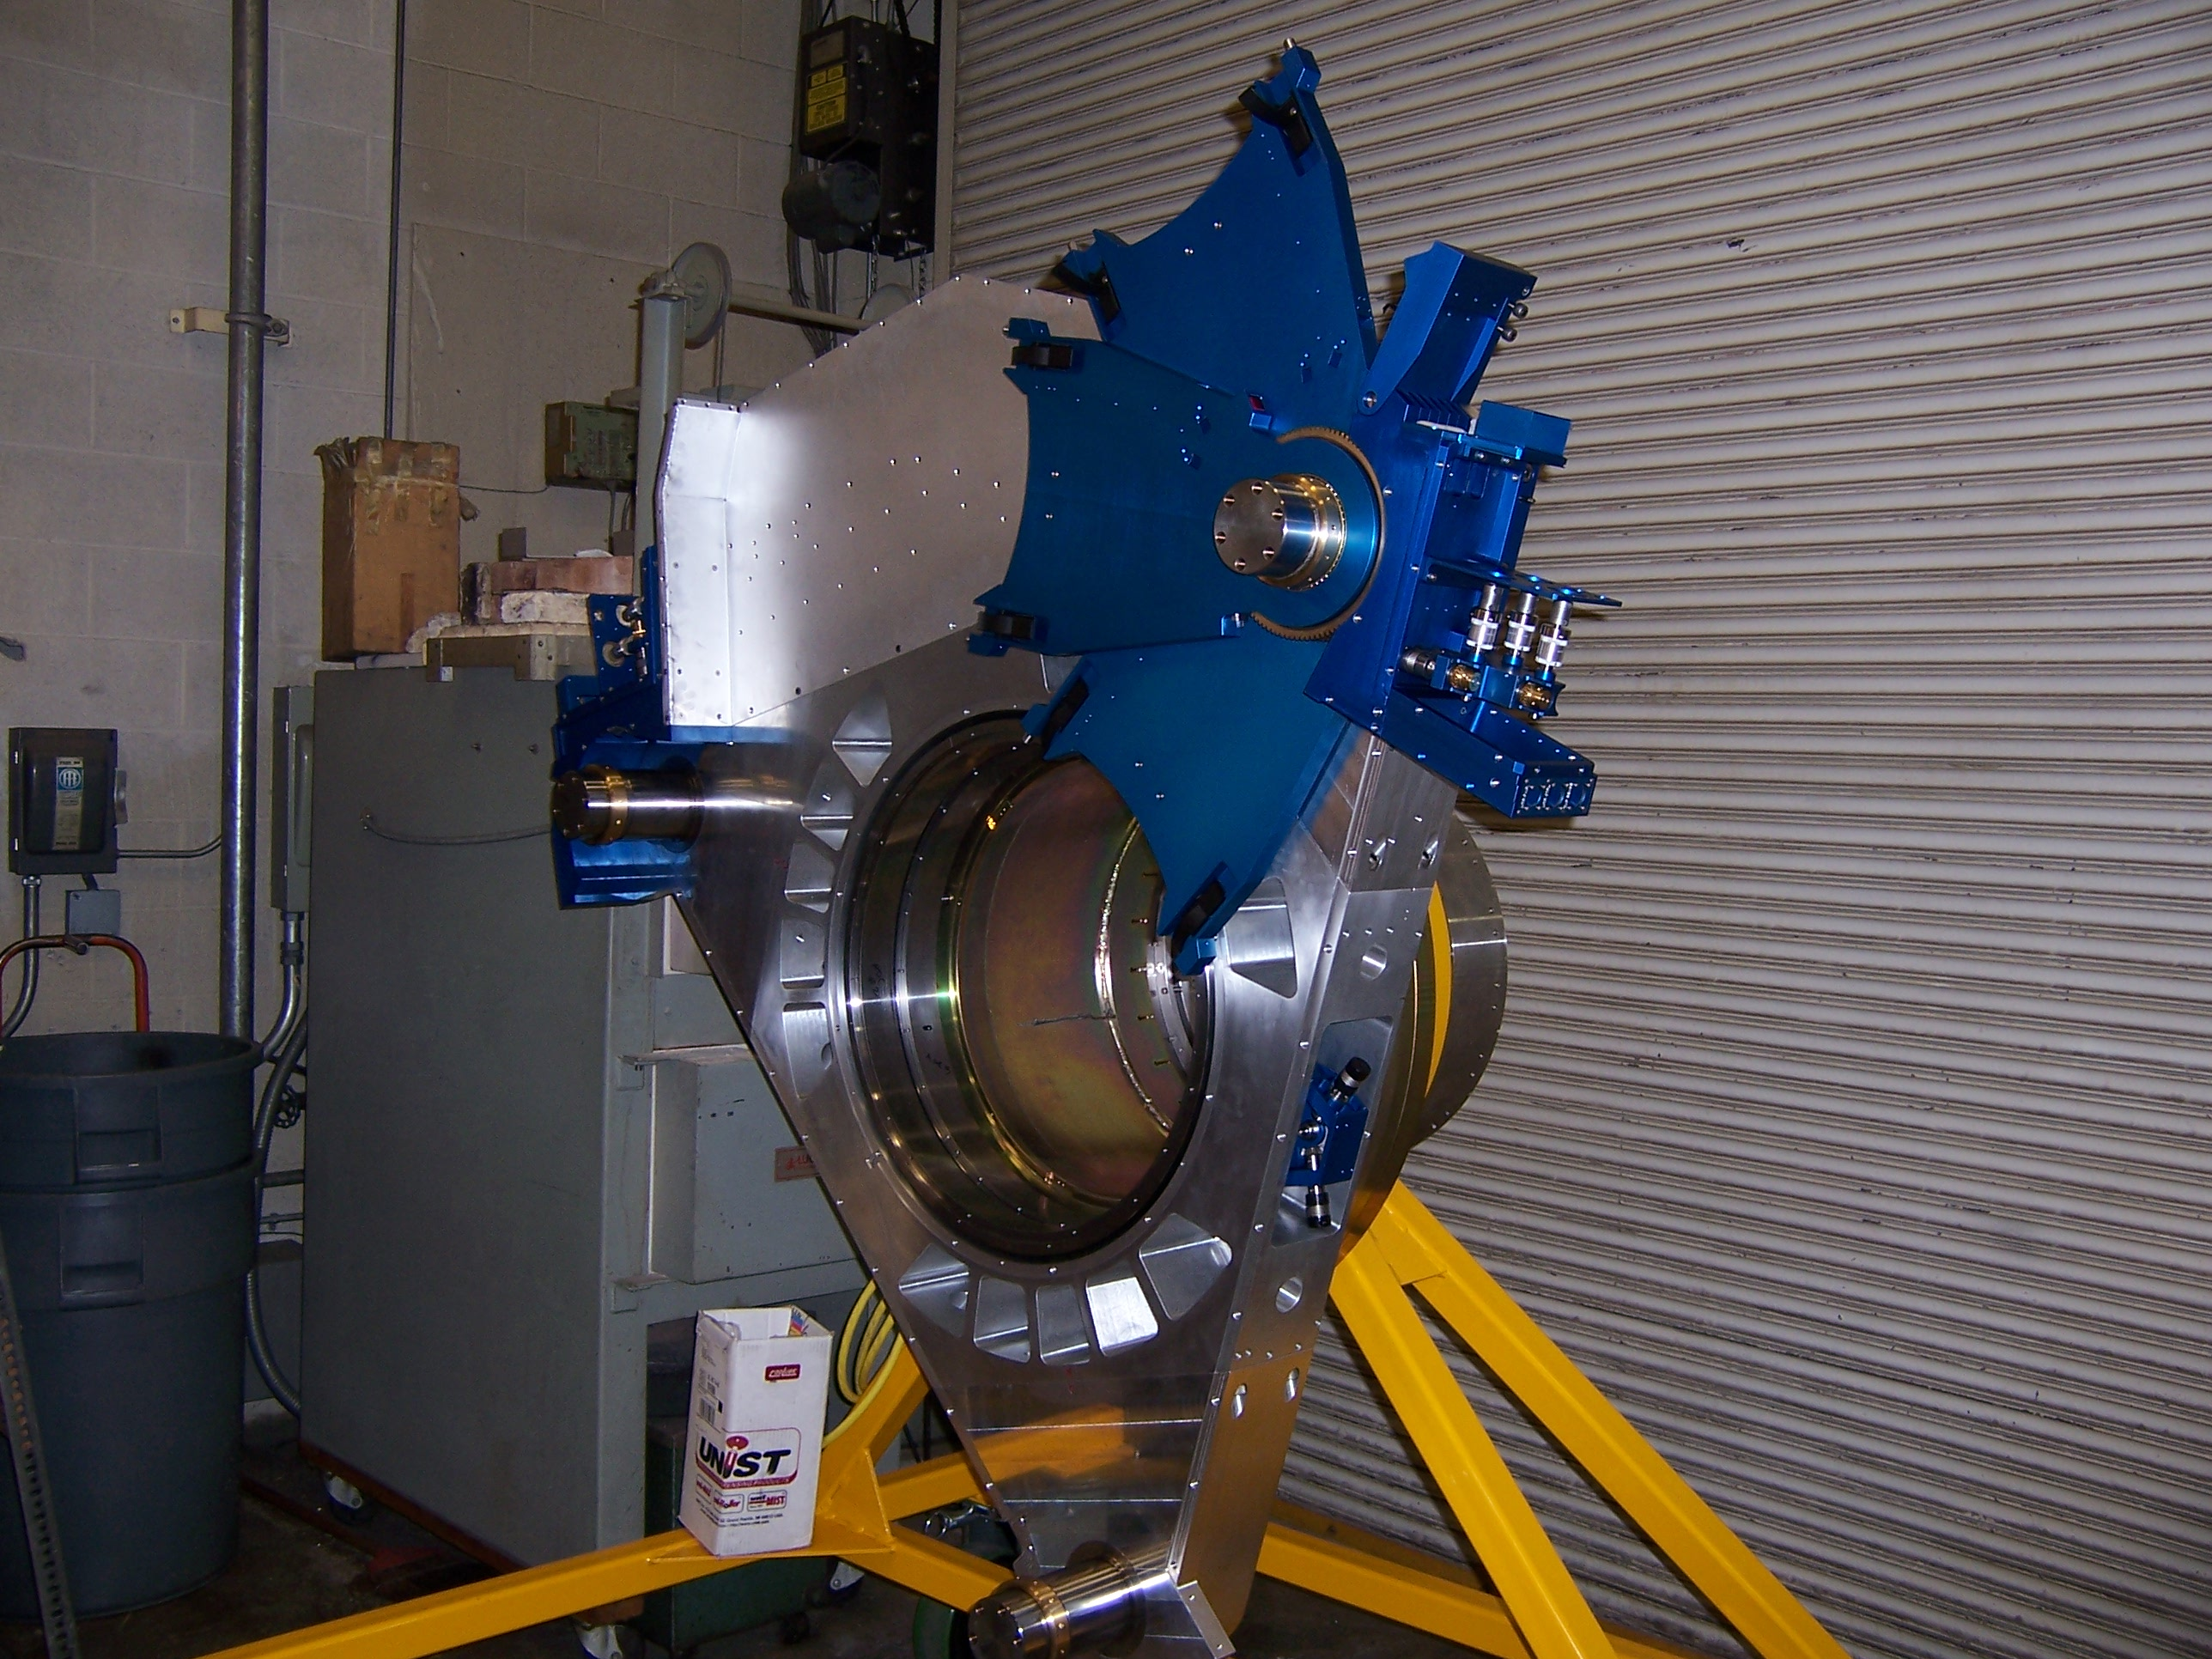 Parts of the ODI instrument support package are put together for the first time. The blue-painted components are part of the fitler mechanism.